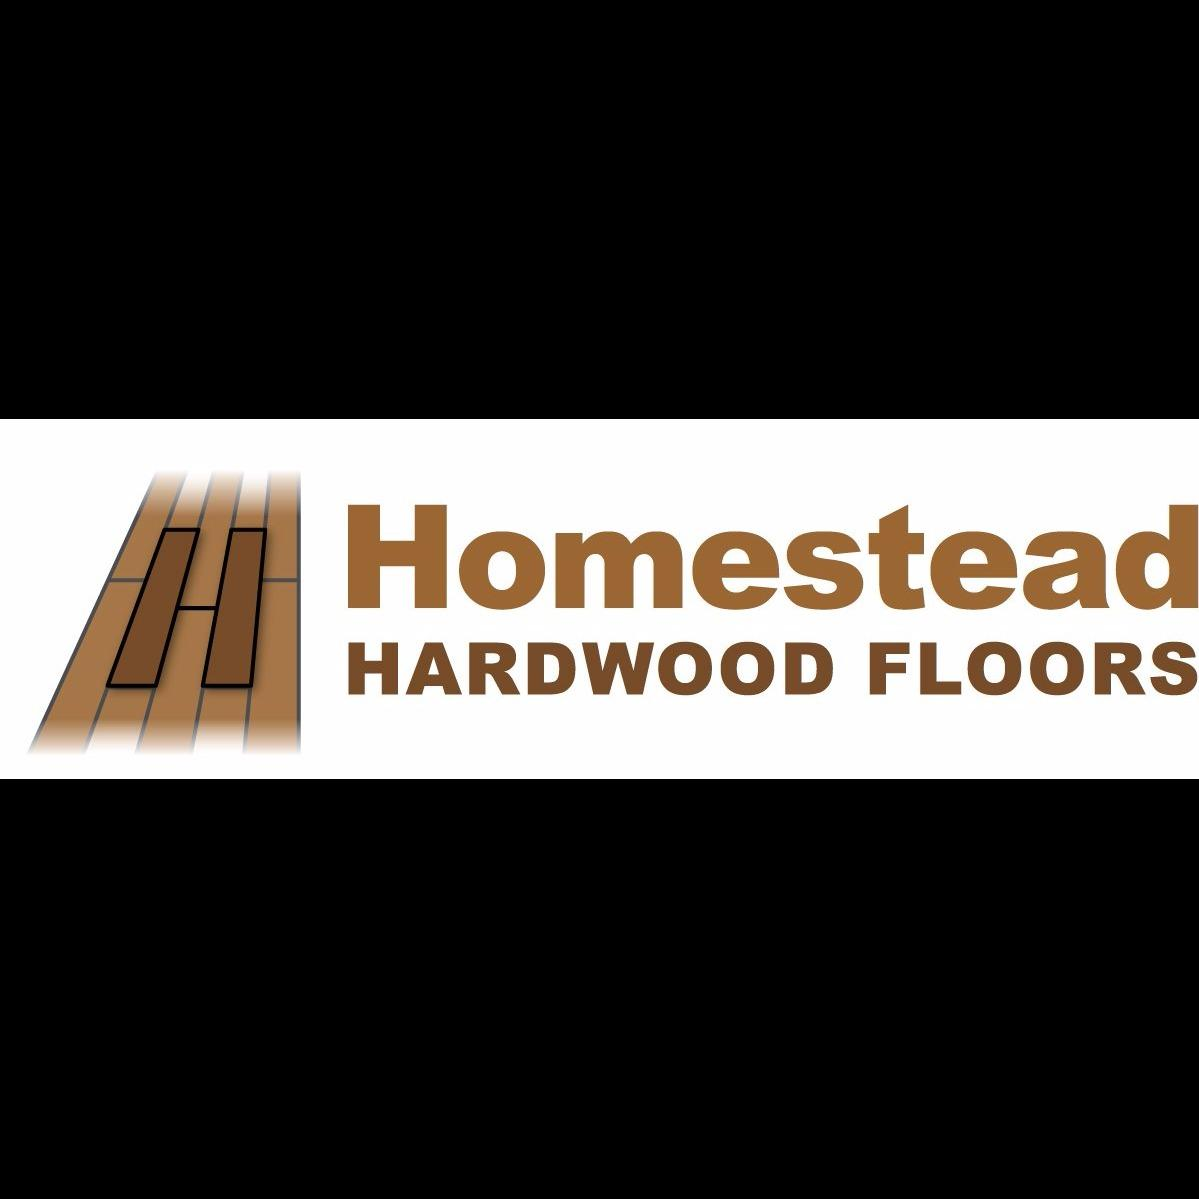 Homestead hardwood floors llc coupons near me in 8coupons for Hardwood floors near me